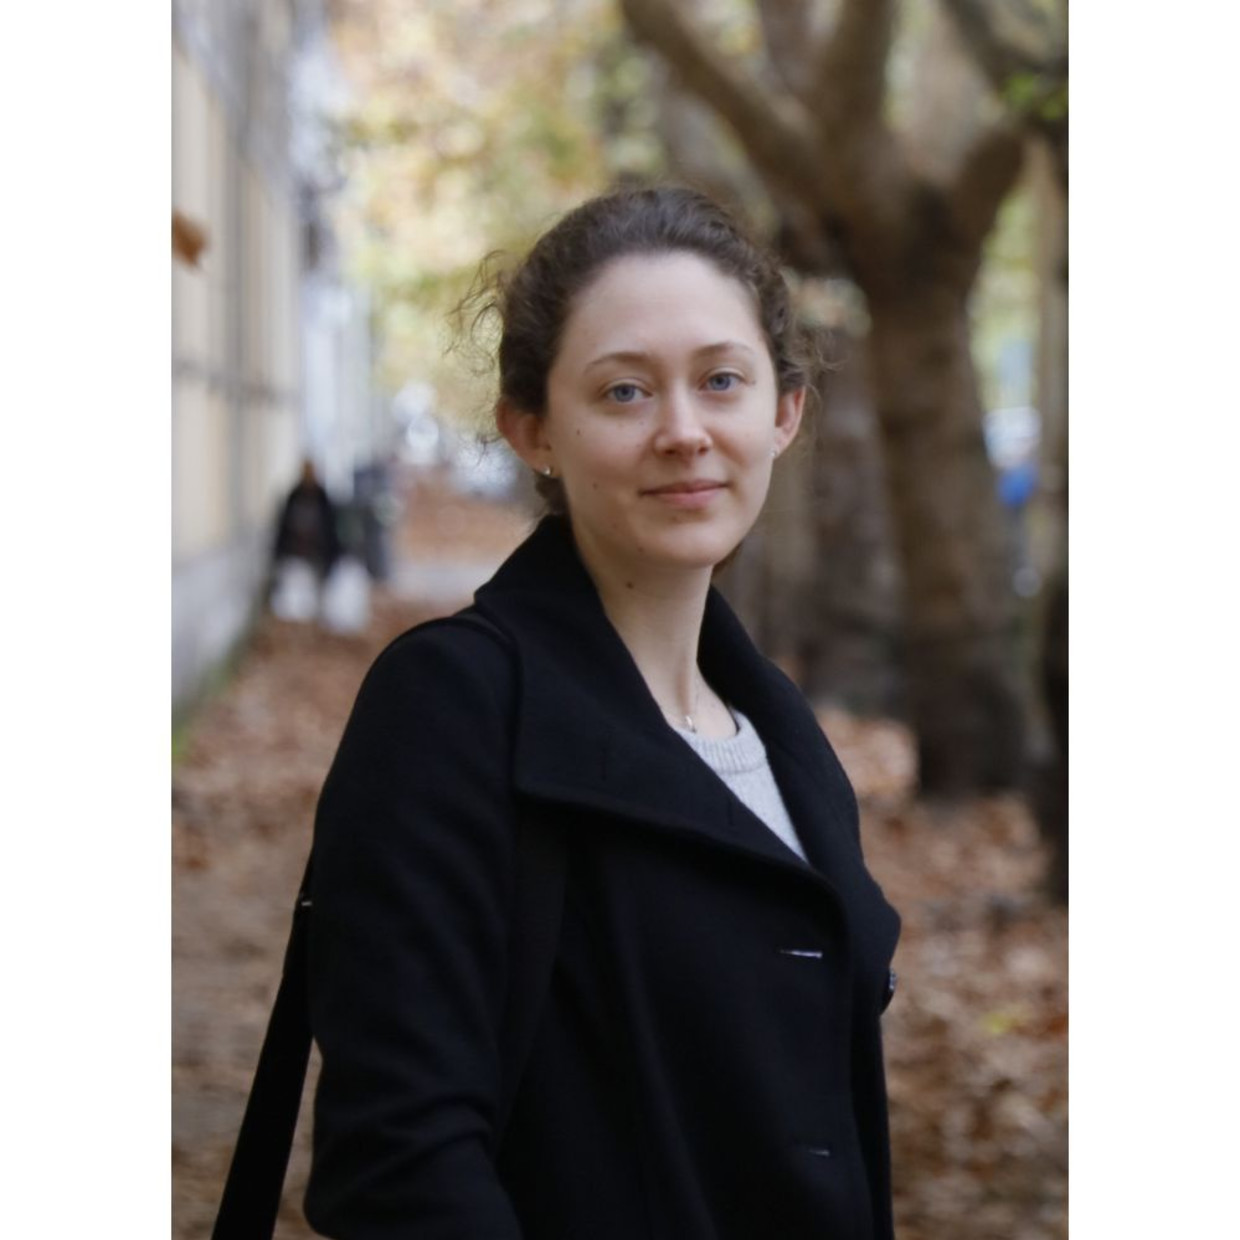 curator Lisa Angela Orcutt Lisa Angela Orcutt is an American curator and translator based in Beijing. In 2018, Orcutt obtained...